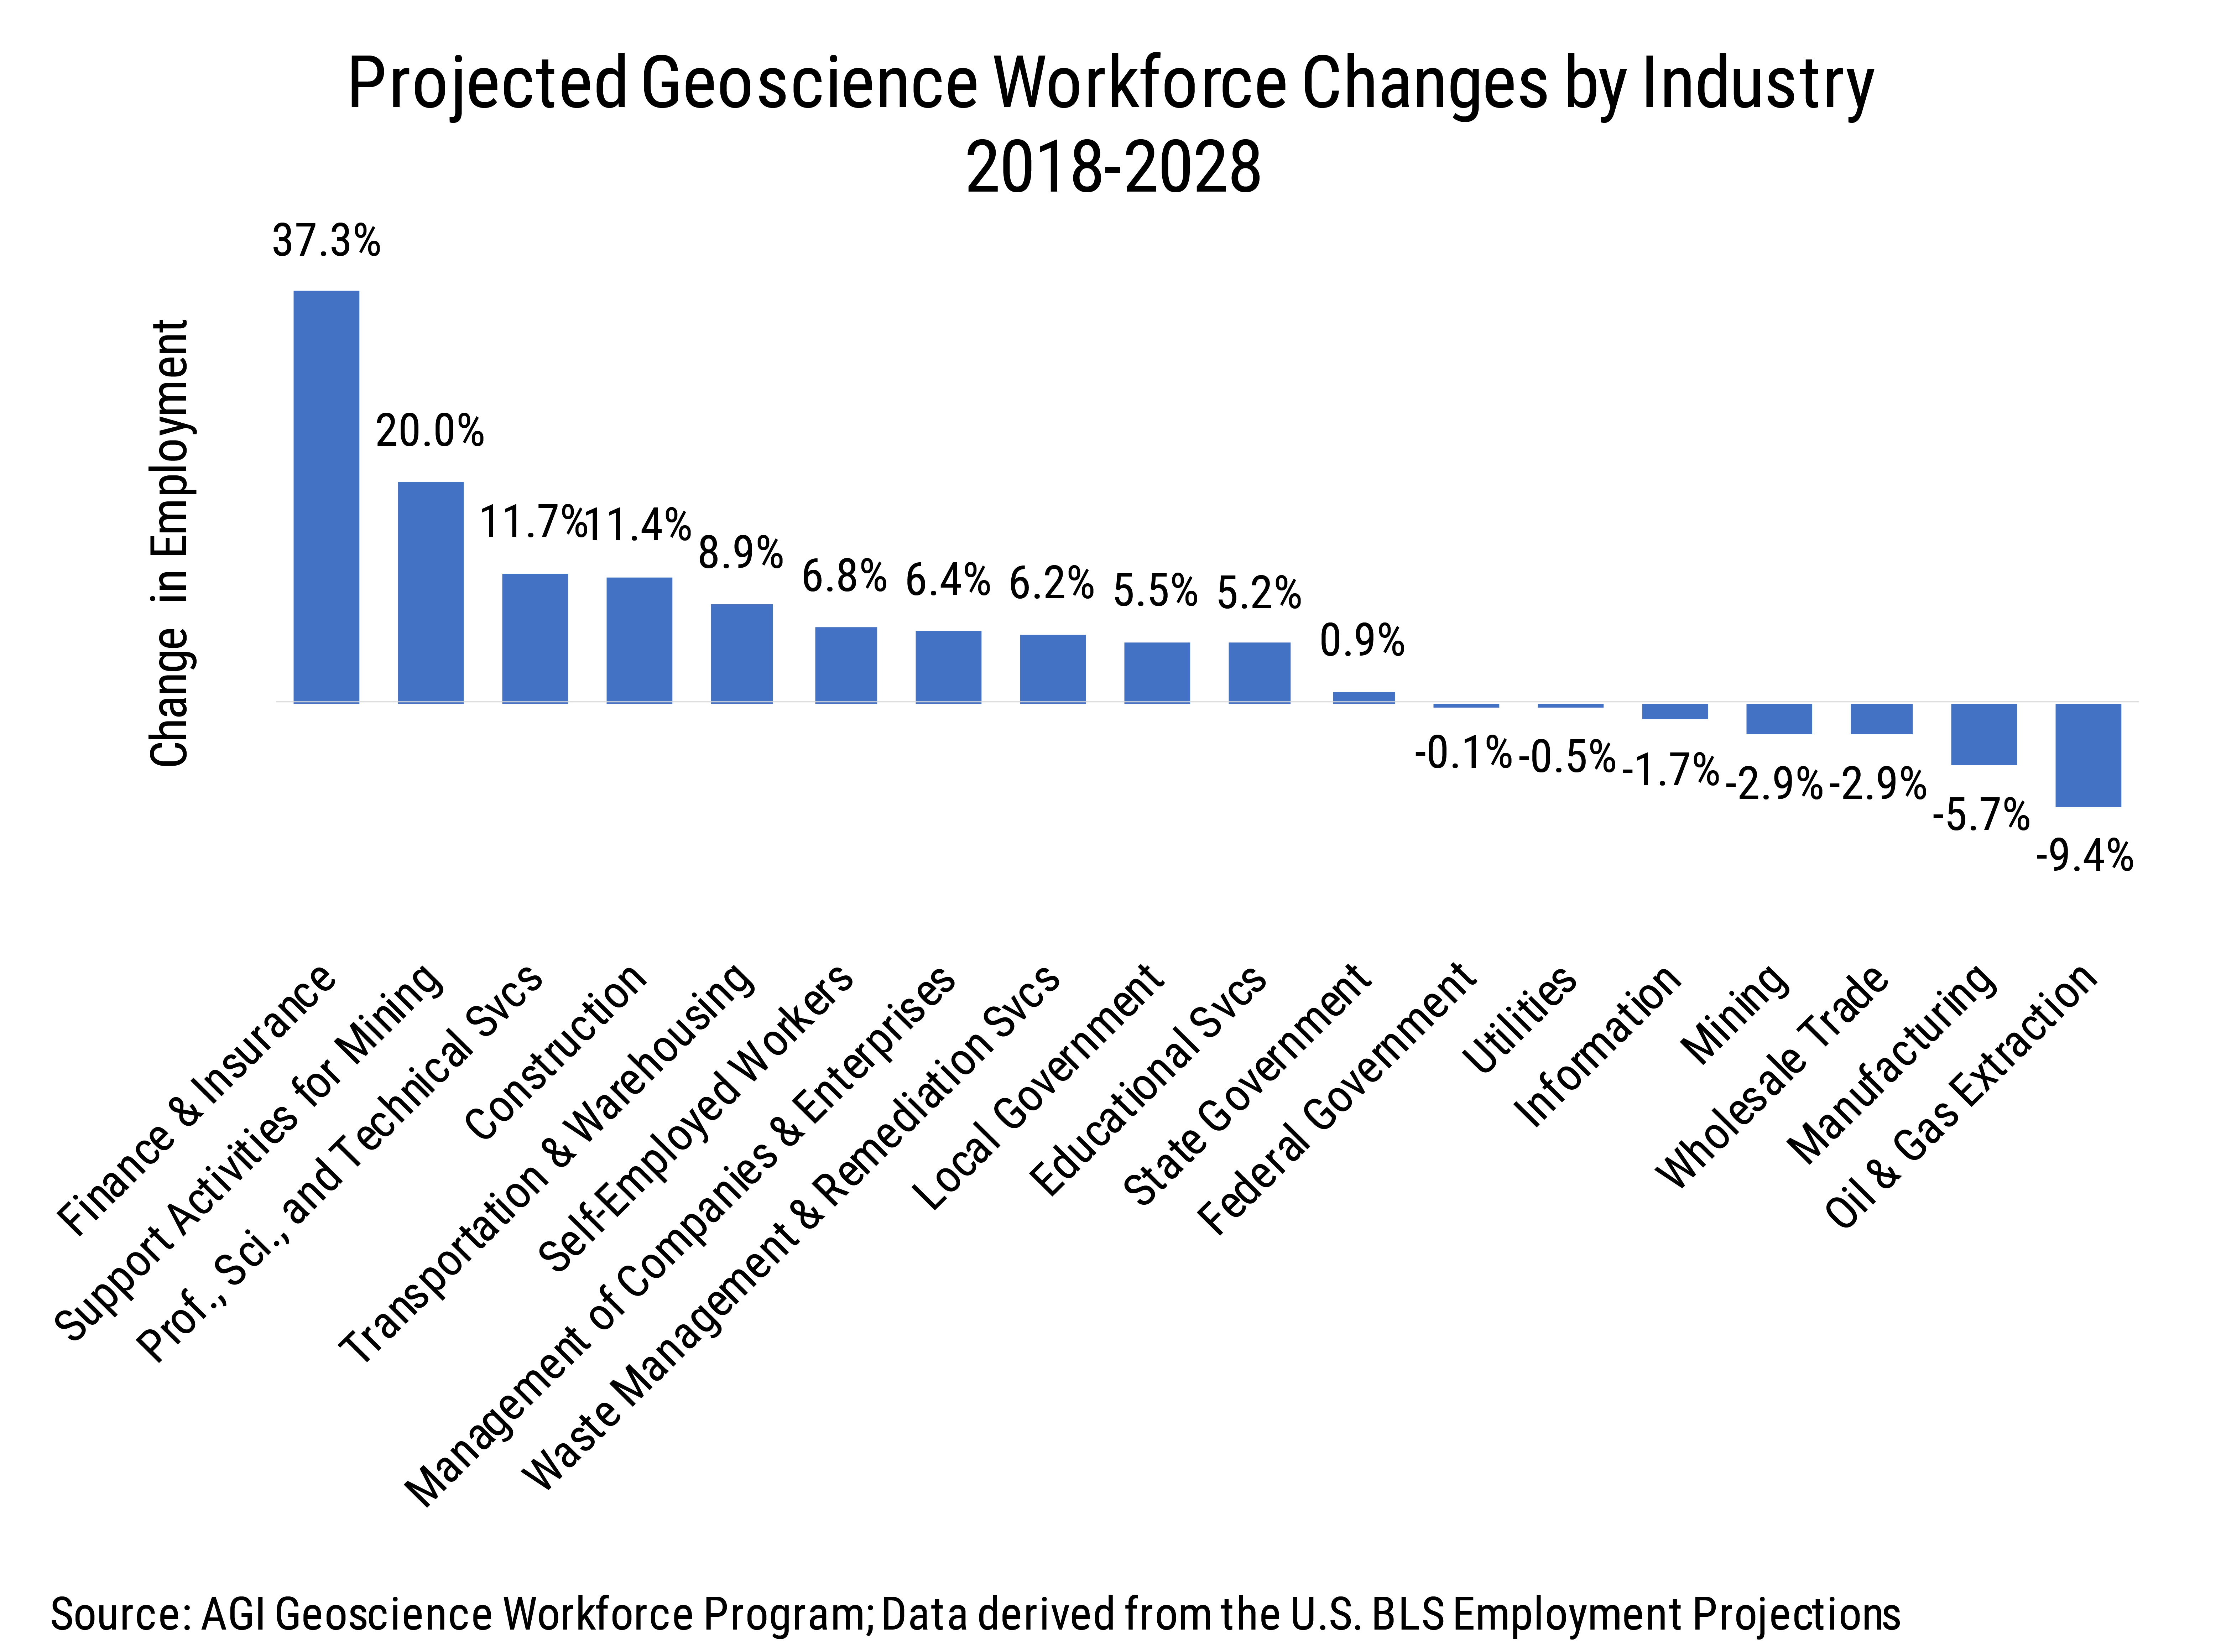 Data Brief 2009-010 chart02: Projected Geoscience Workforce Changes by Industy (2018-2028)